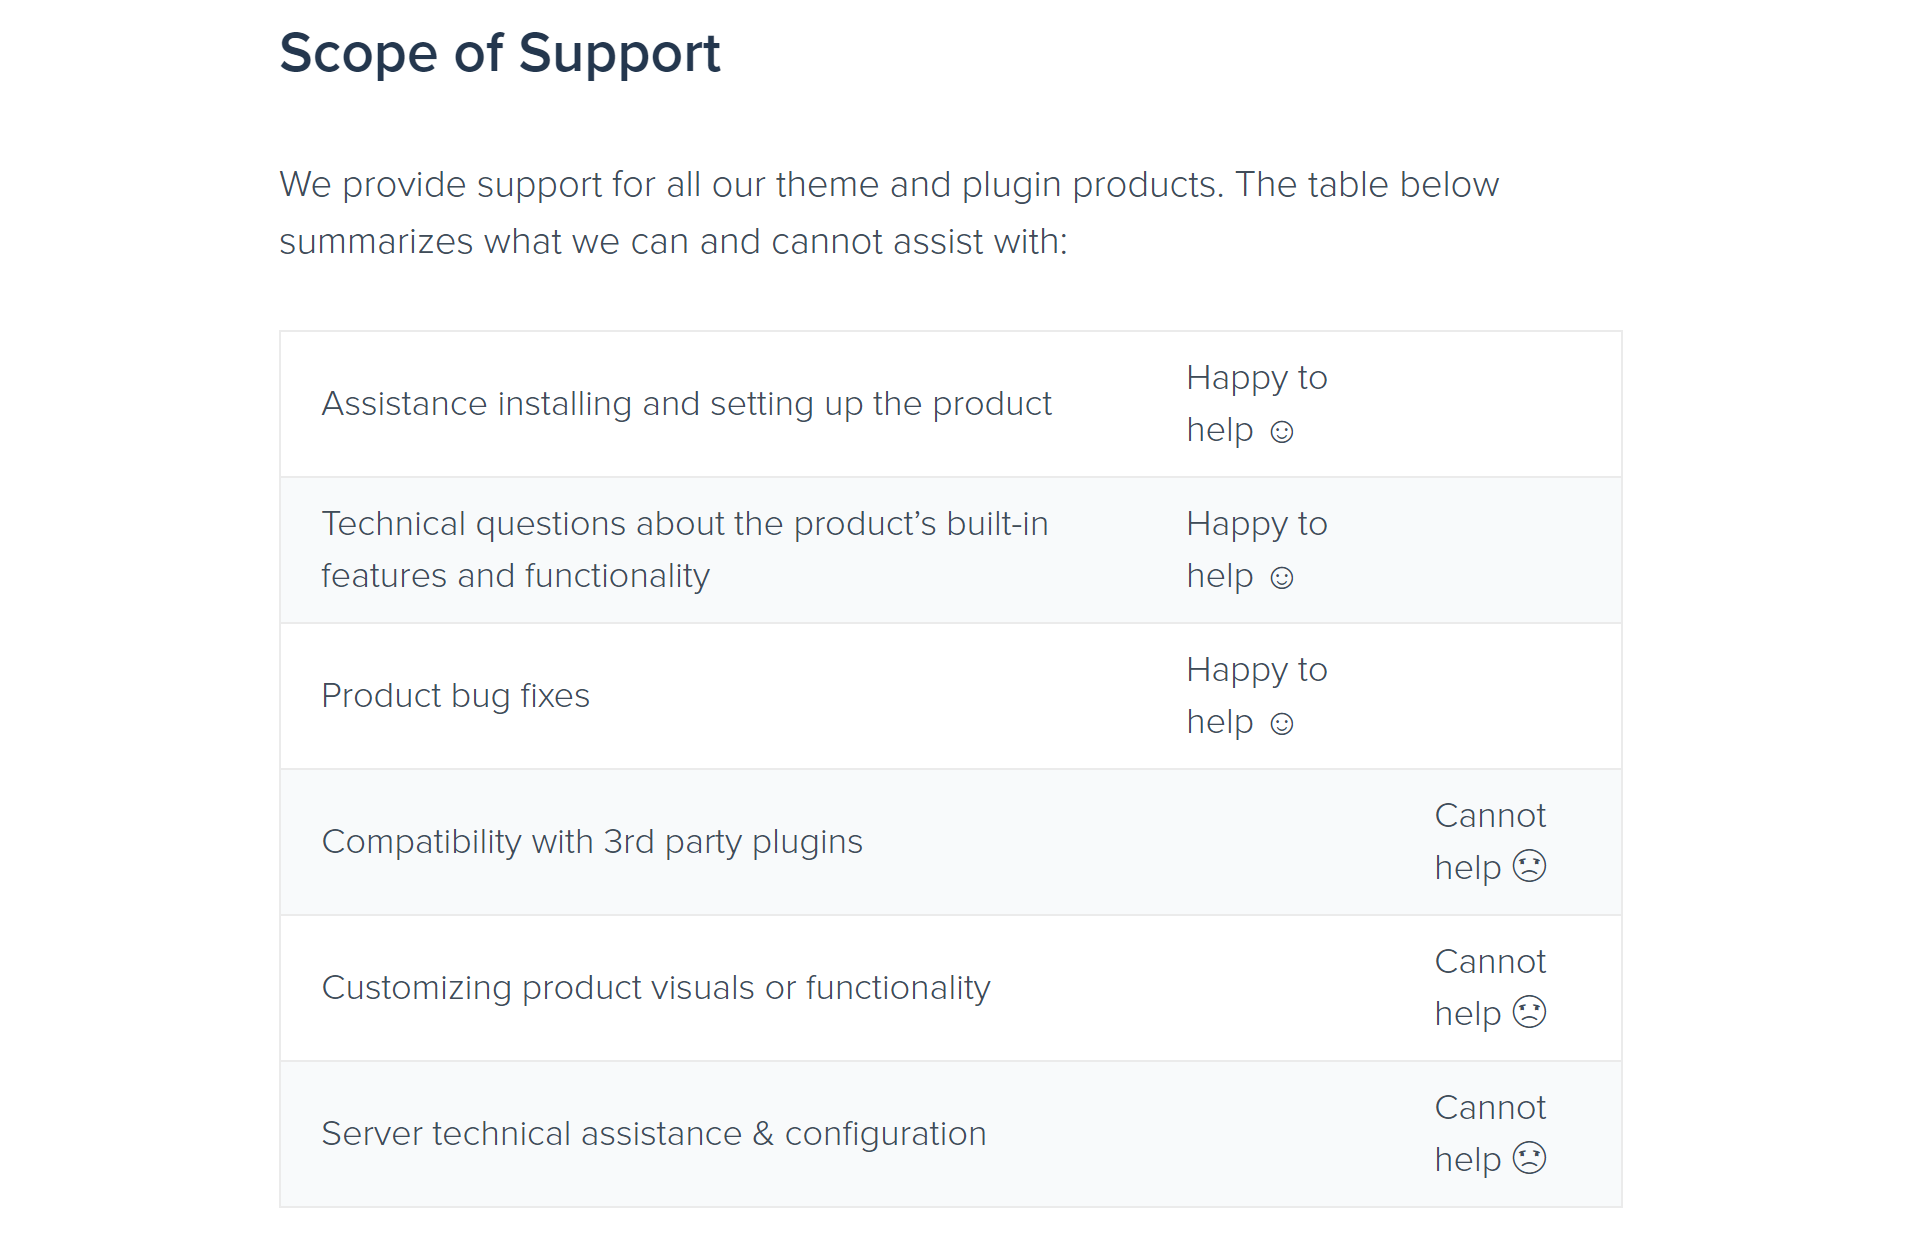 More detailed support policy